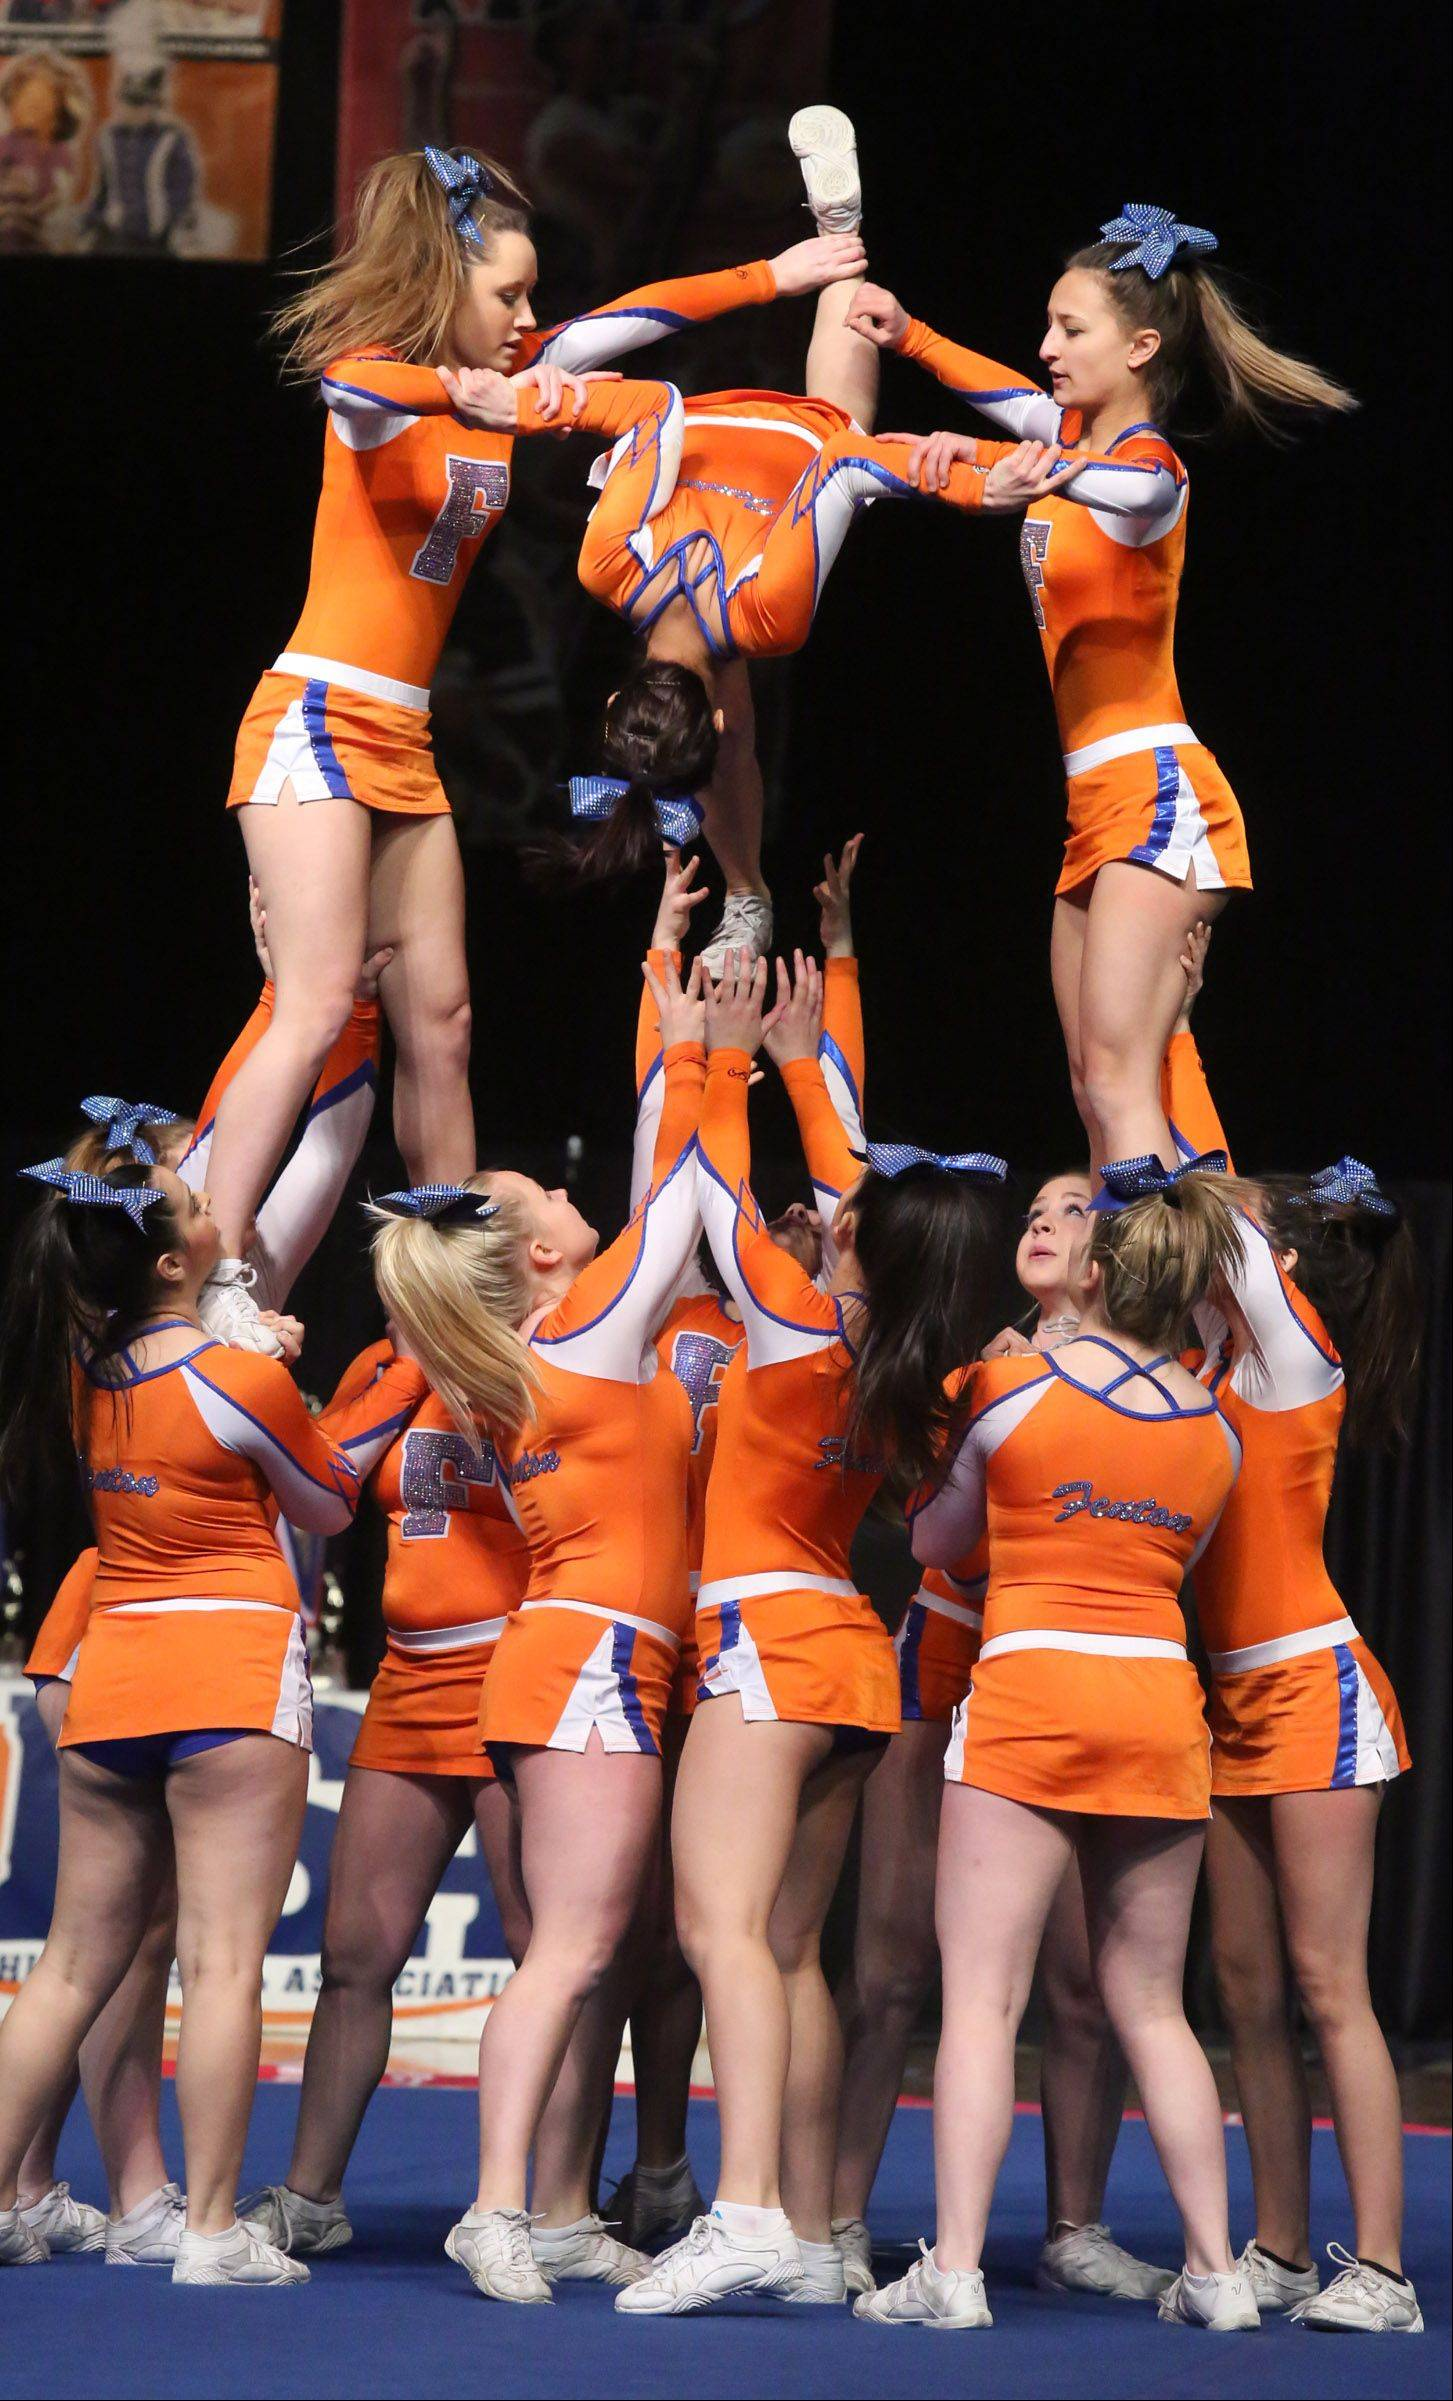 Fenton High School's cheer team performs in the medium team category.